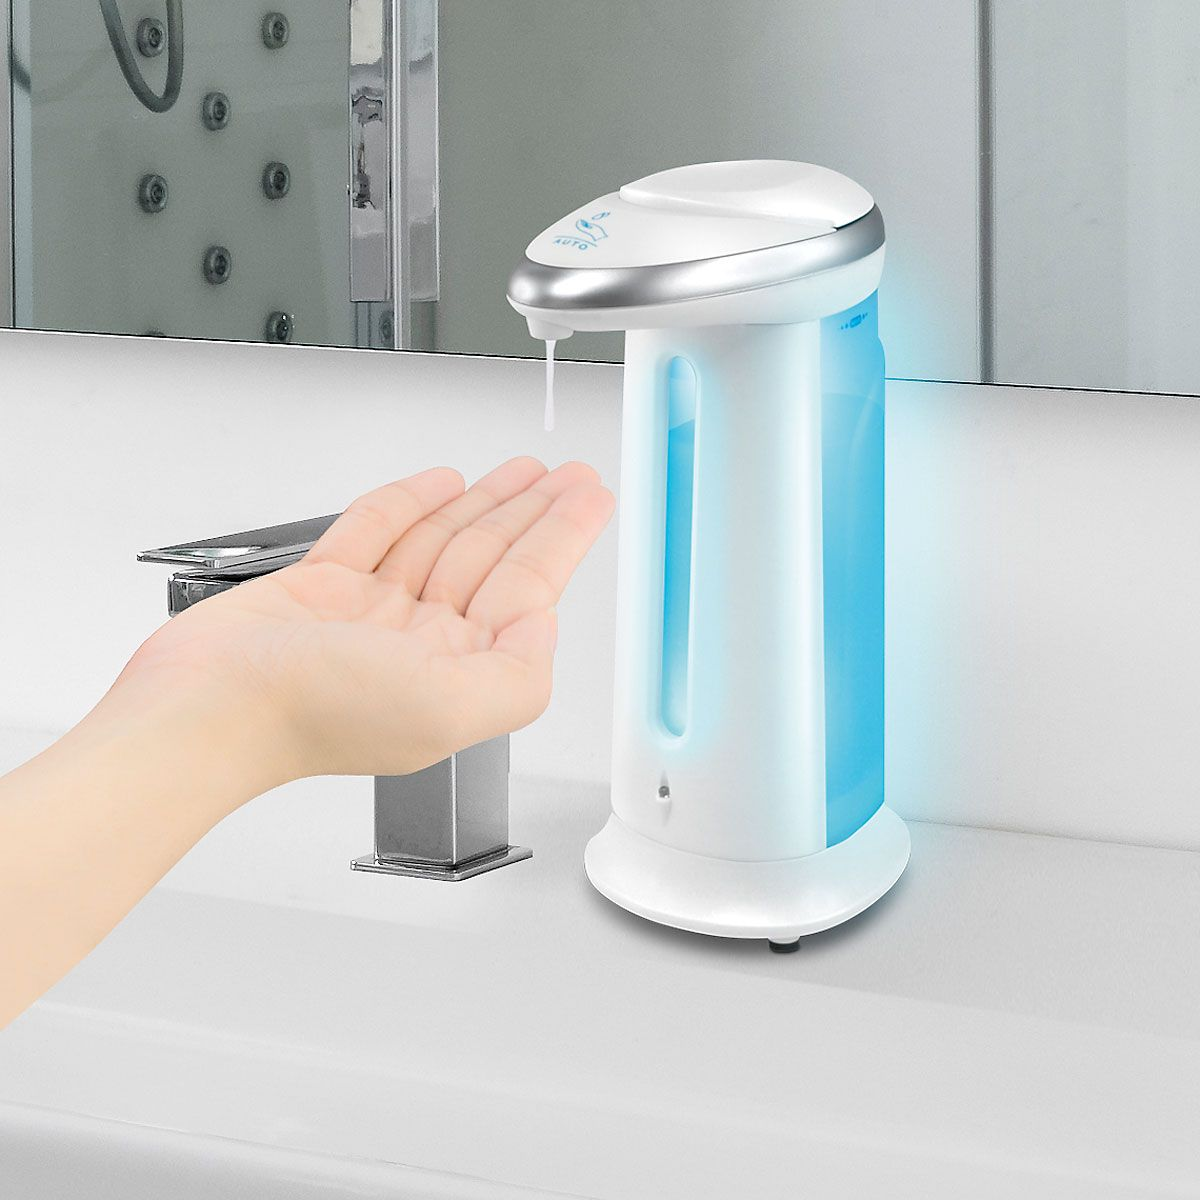 Hands-Free Soap Dispenser